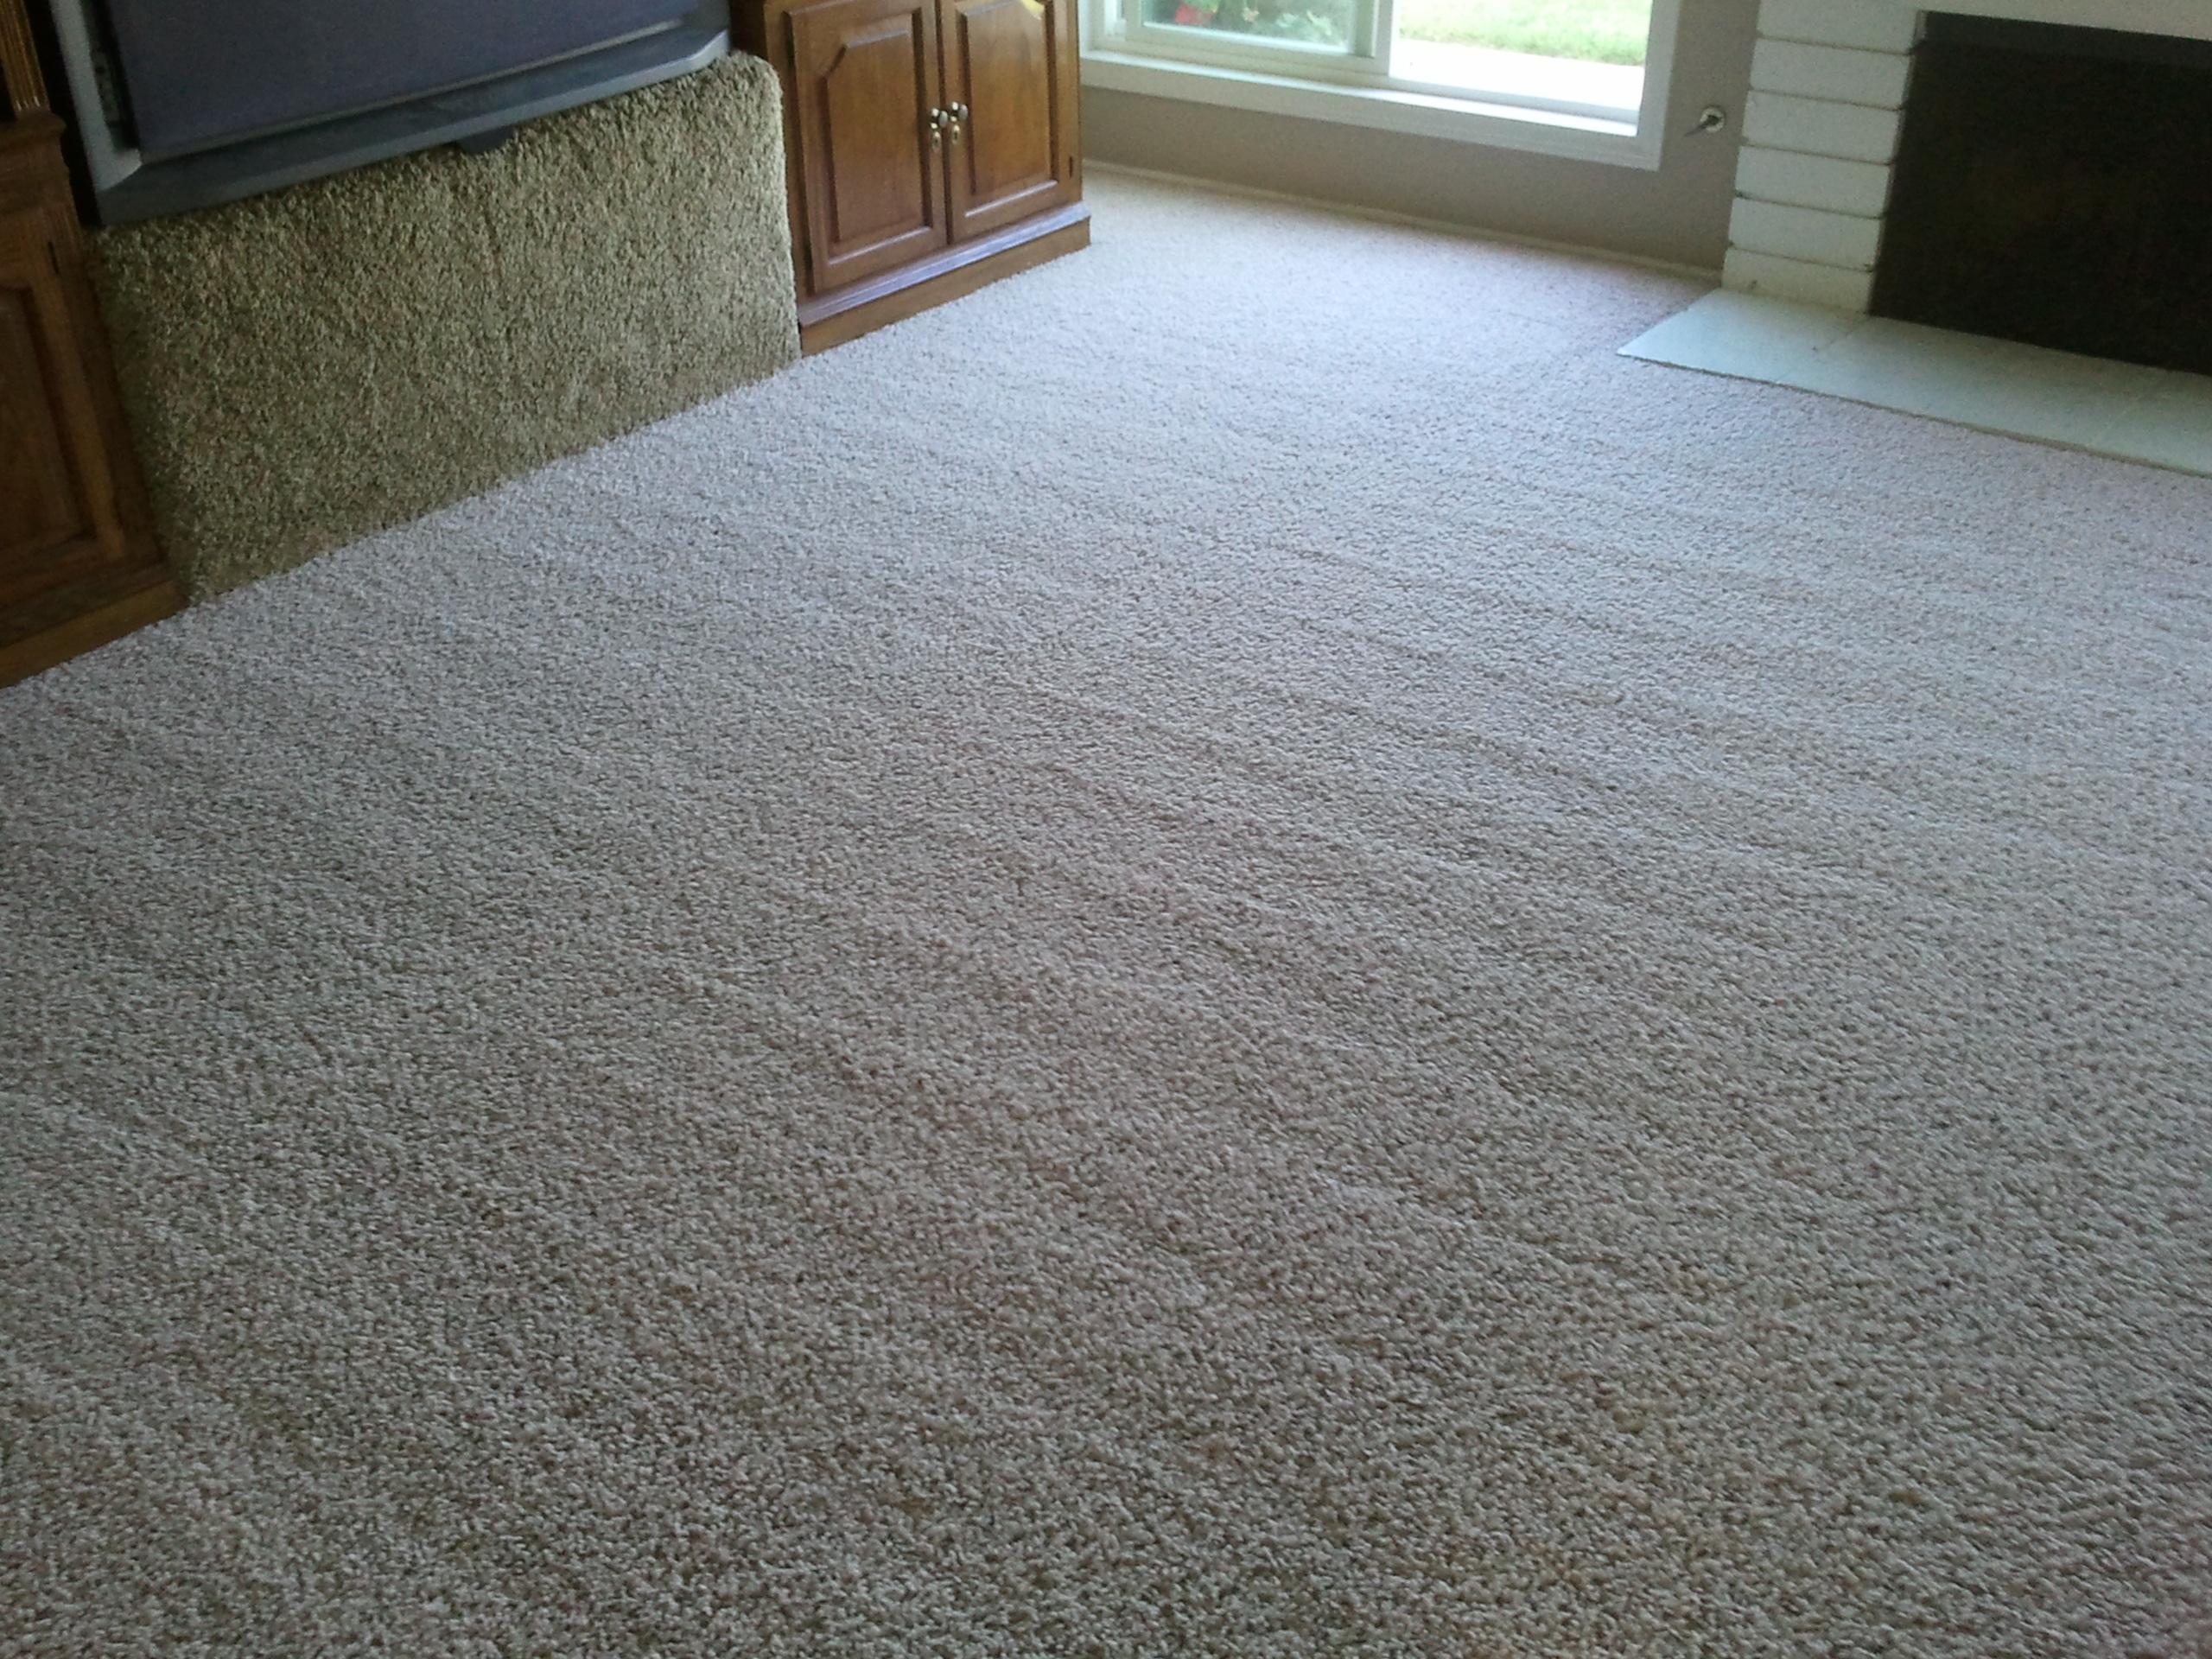 best types of carpet for high traffic areas fox lake il